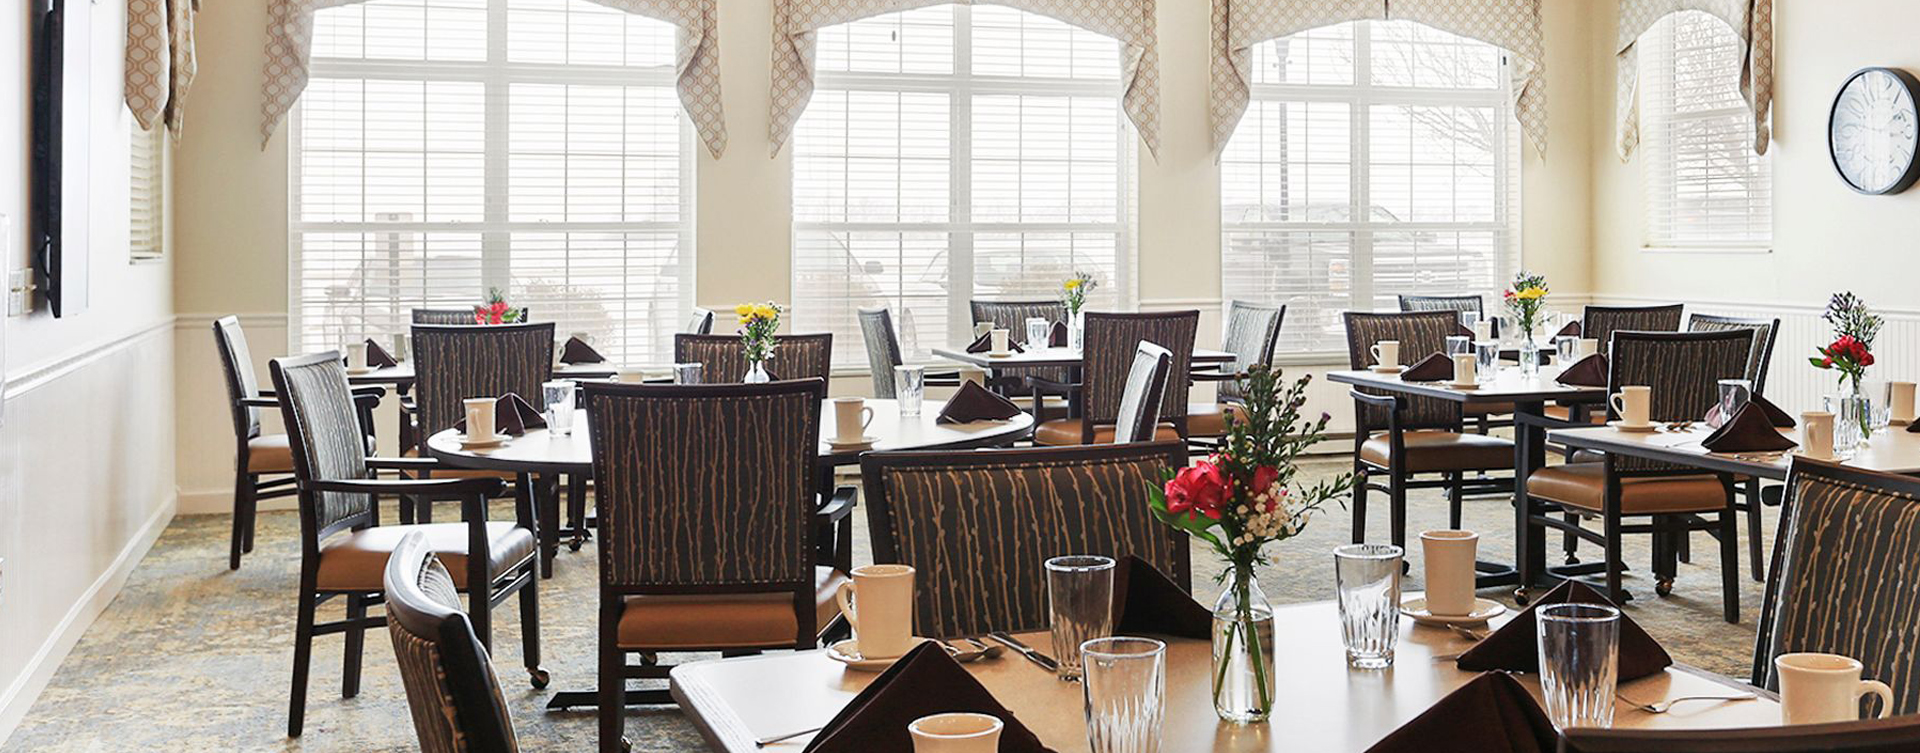 Enjoy homestyle food with made-from-scratch recipes in our dining room at Bickford of Champaign